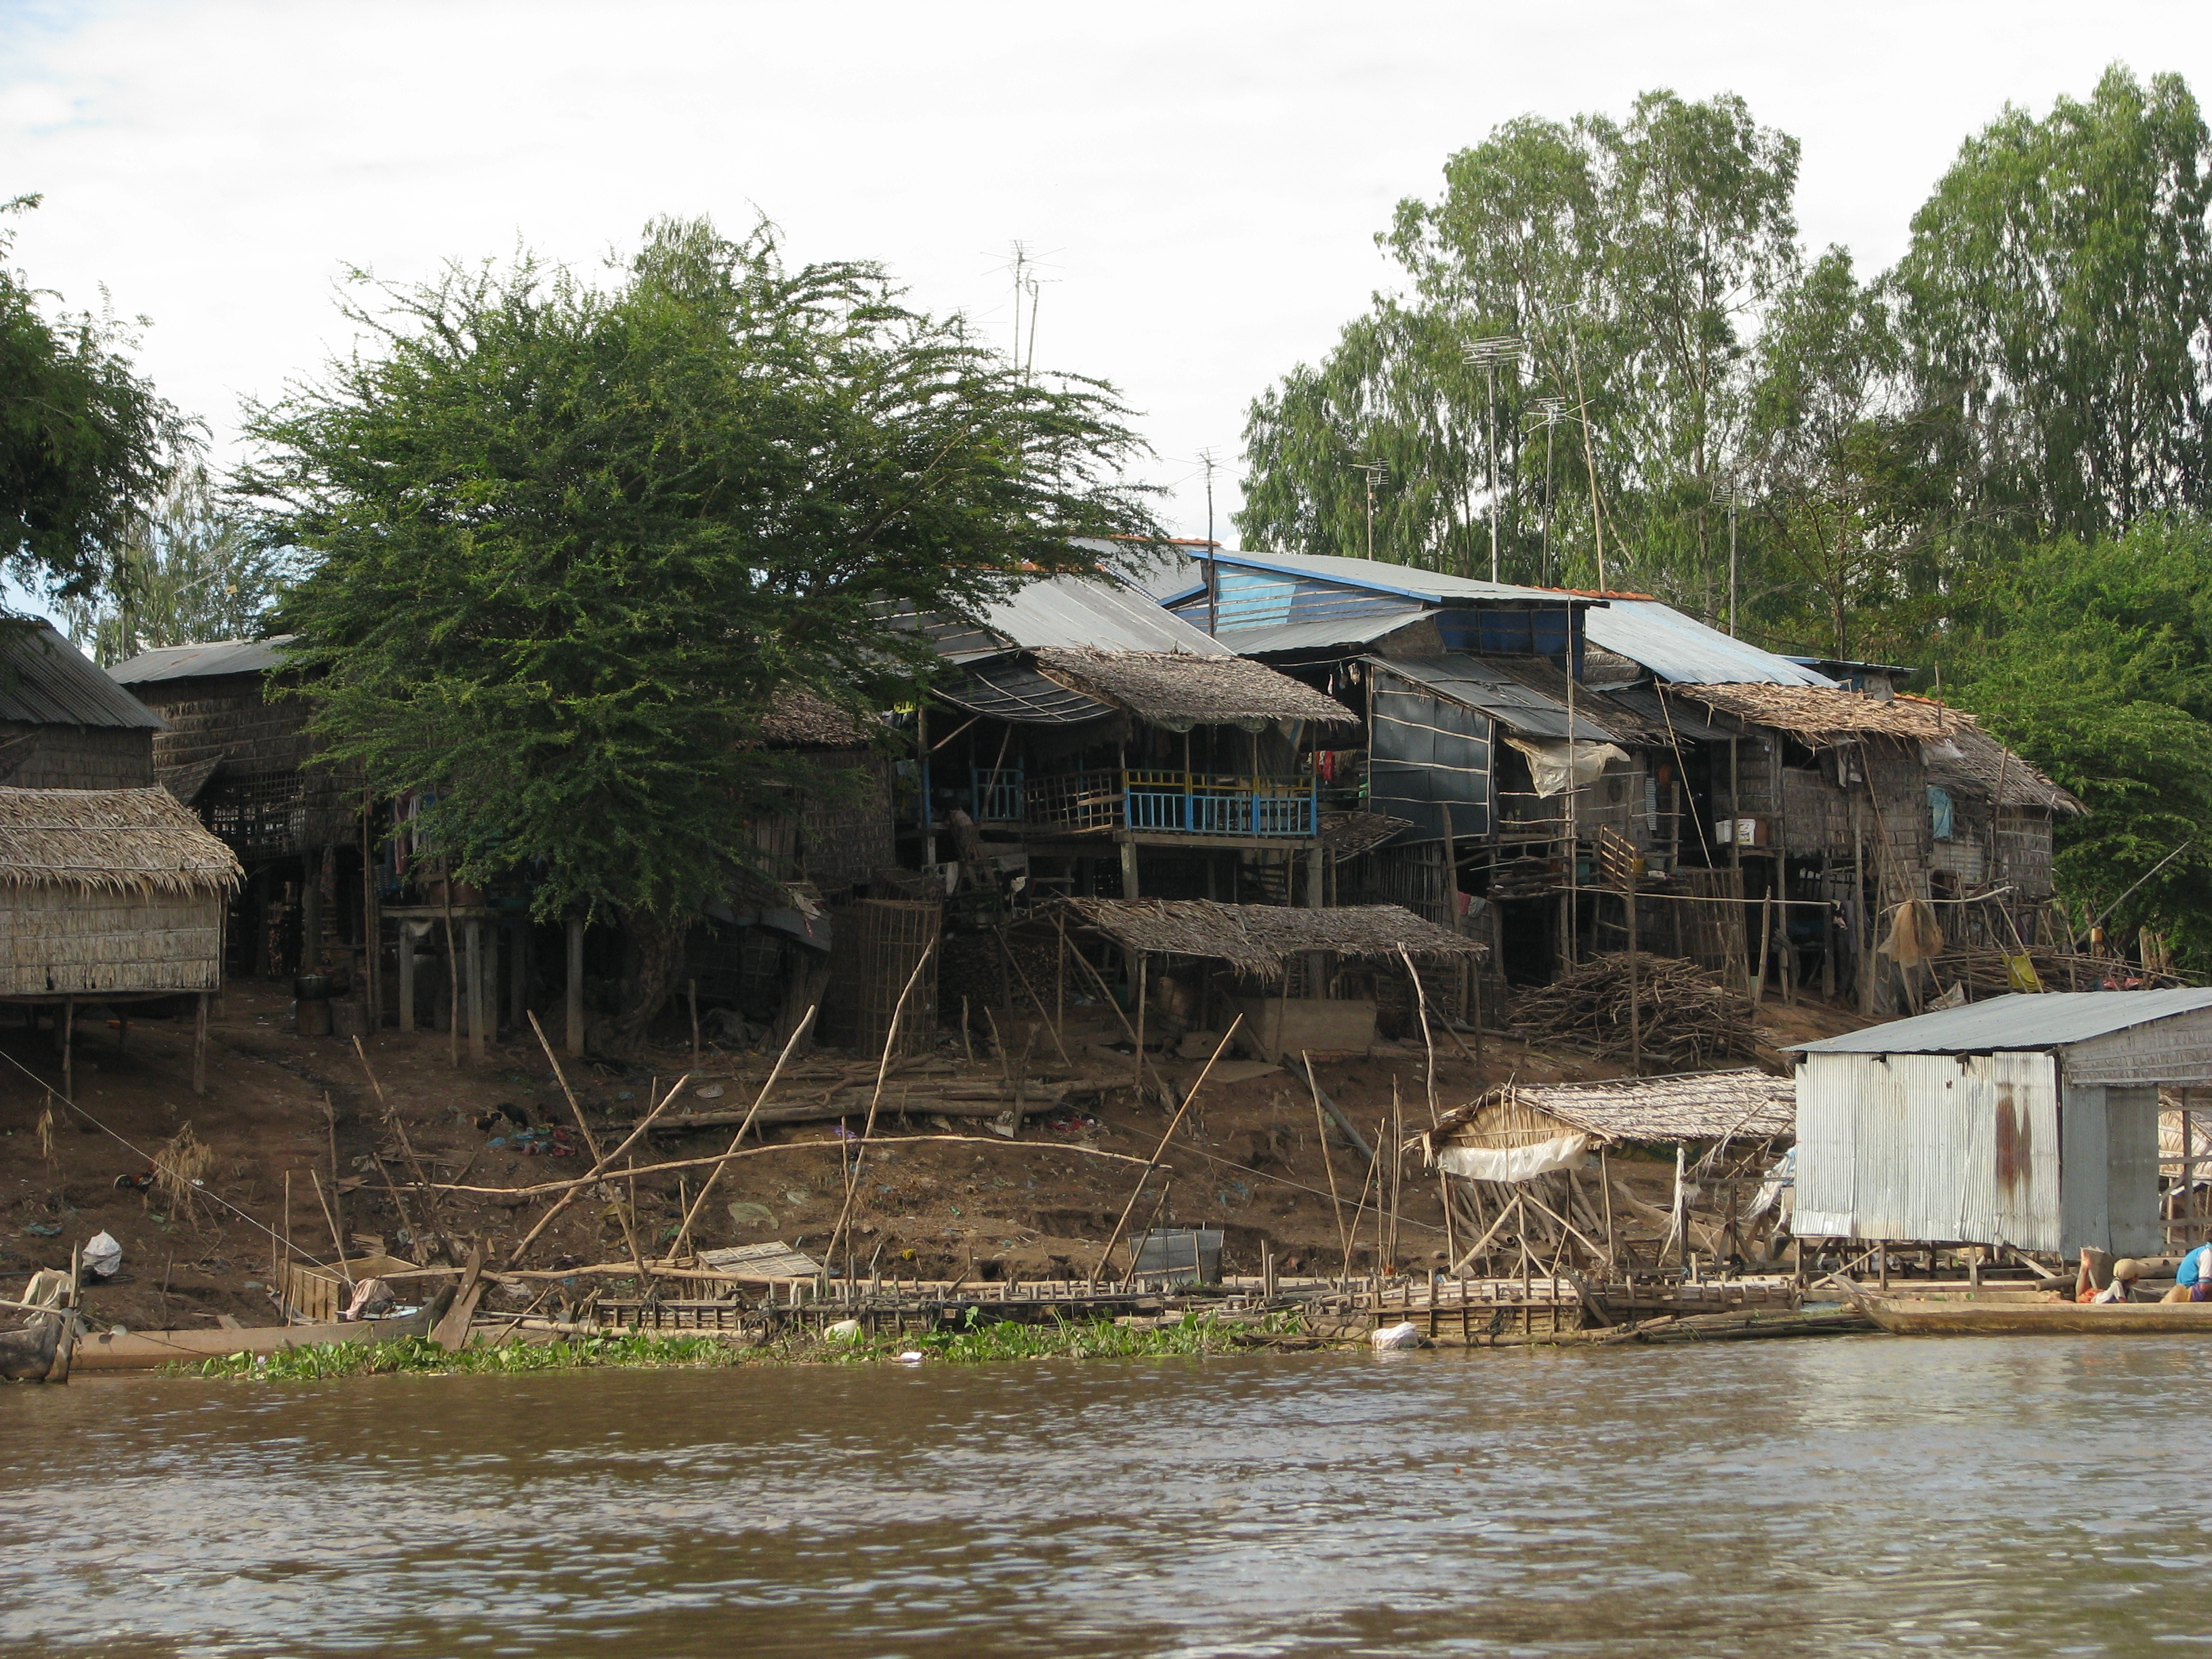 Cambodia_08_-_004_-_riverside_village_(3199480928)